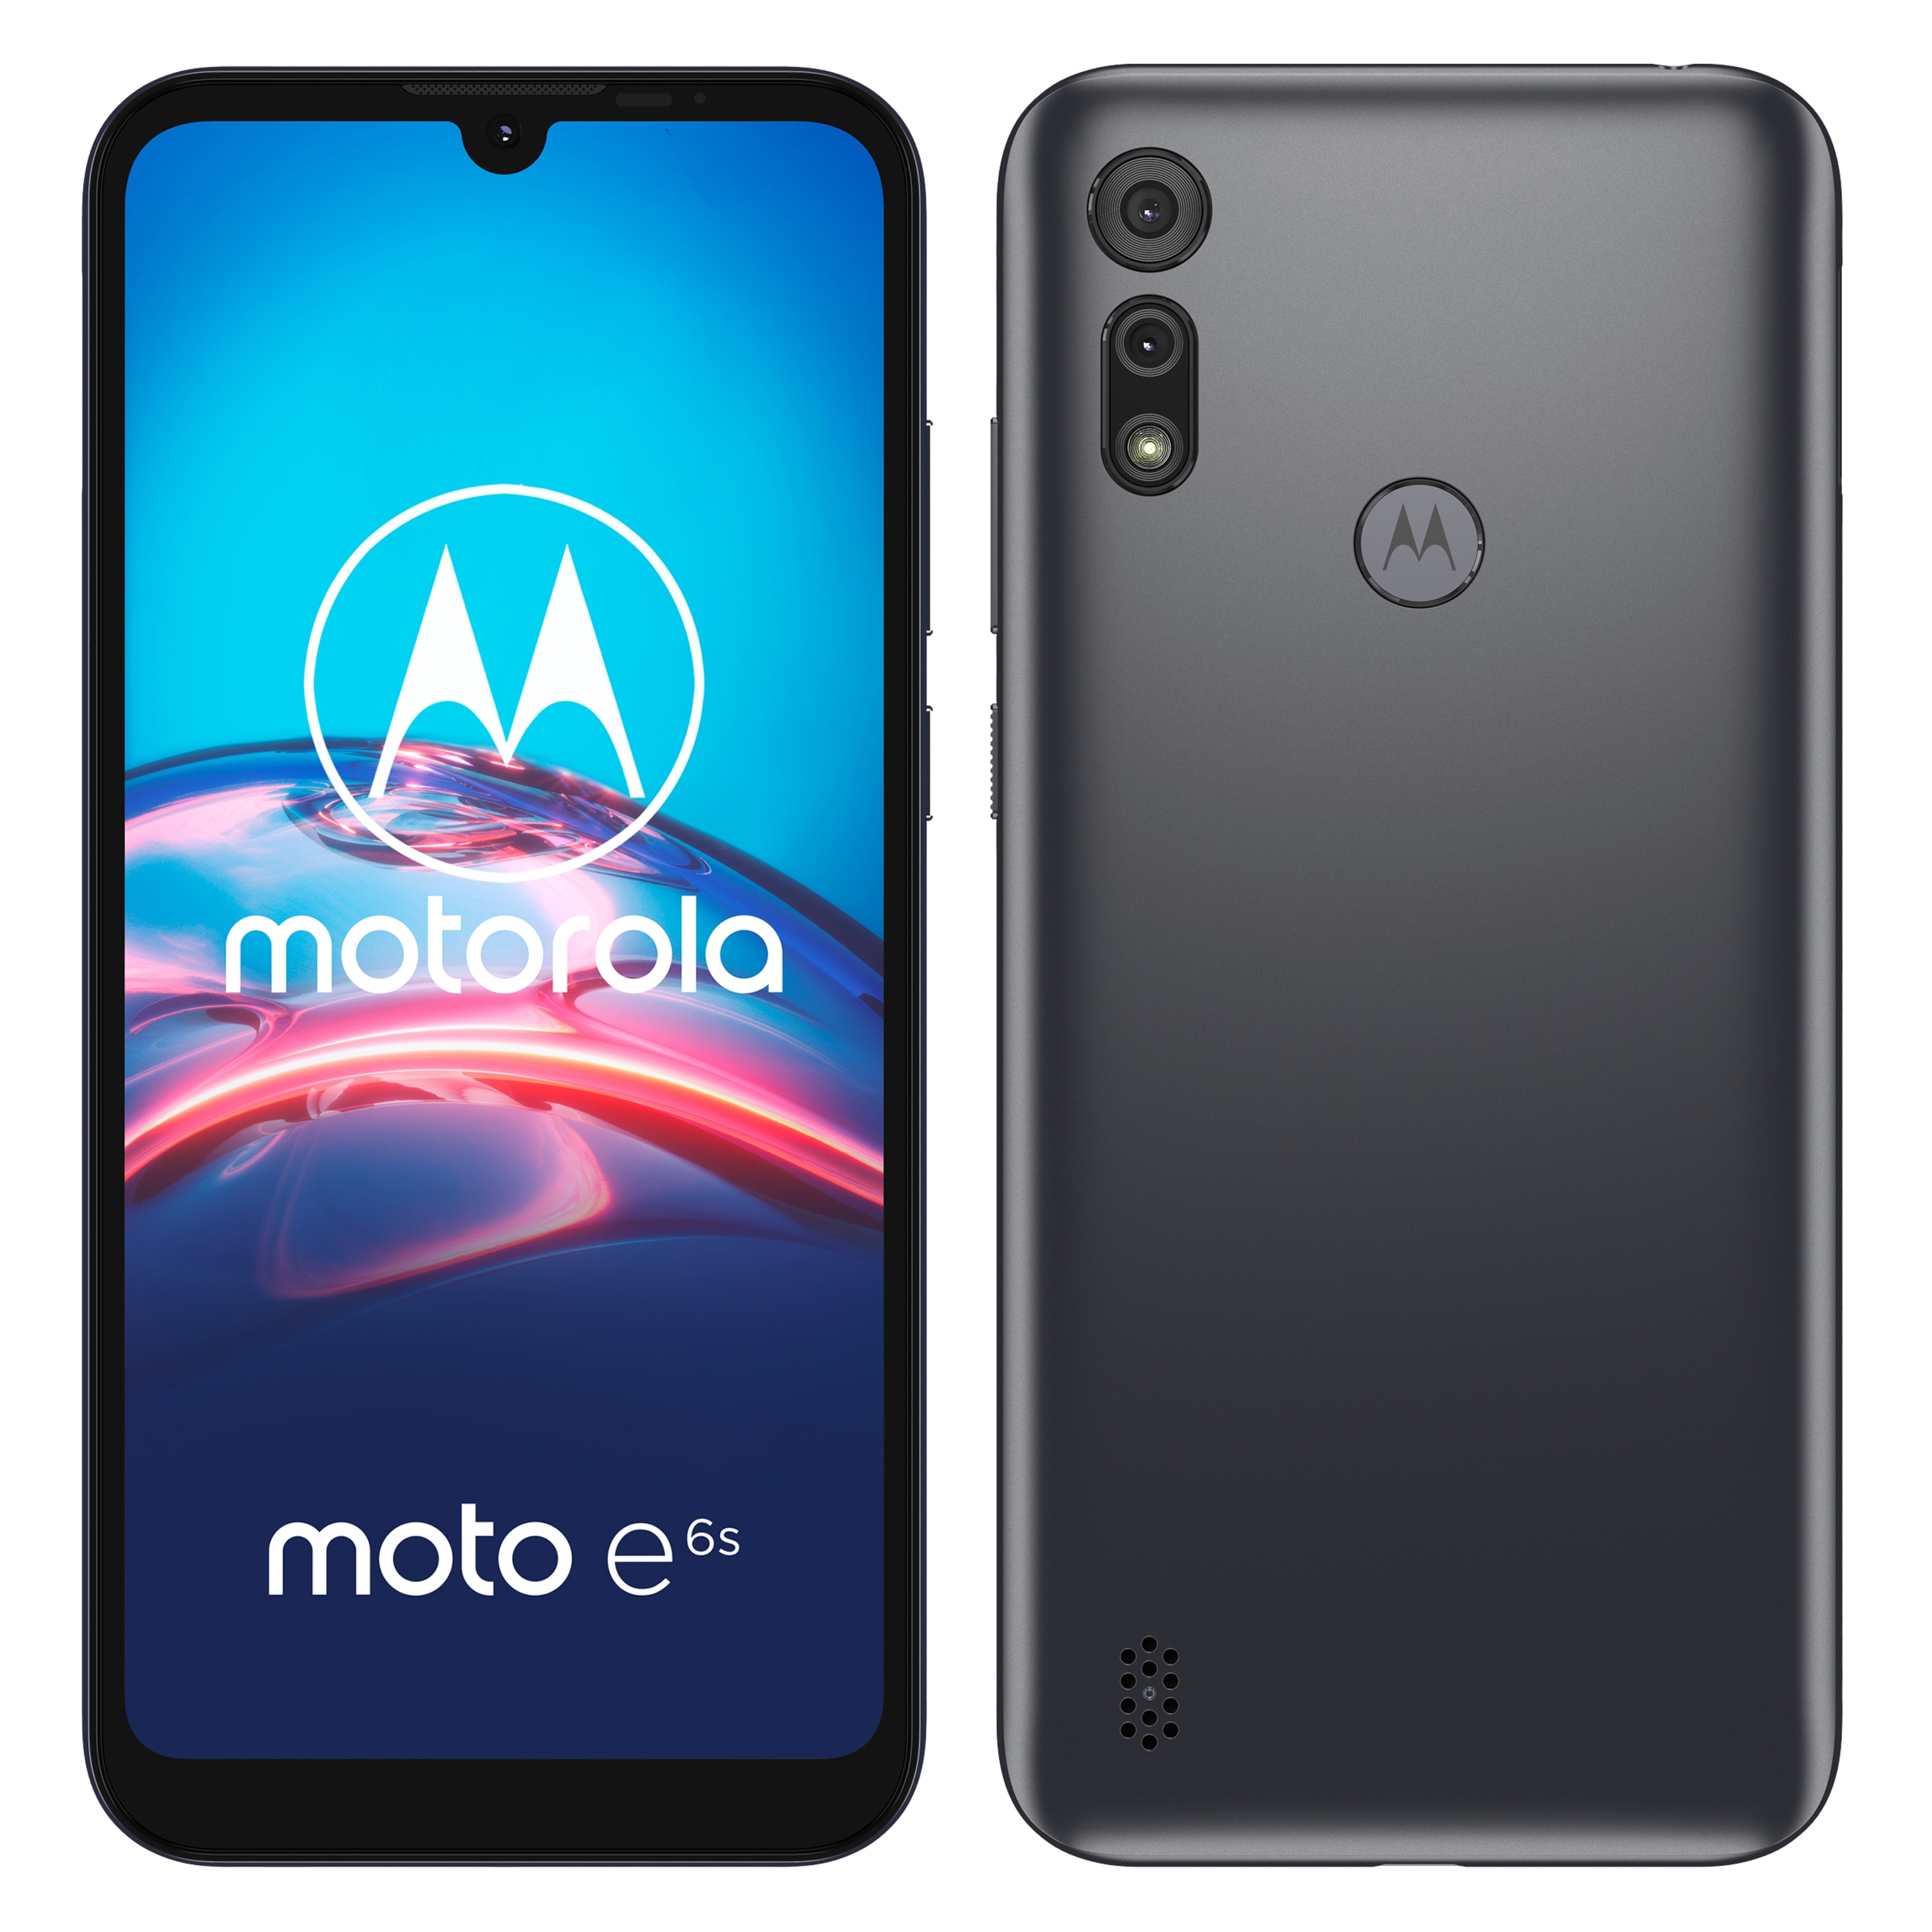 MOTOROLA Moto e6s, 15,5 cm (6,1''), HD+ Display, Android™ 9 Pie, 32 GB Speicher, 2 GB RAM, Octa-Core Prozessor, Dual-SIM, LTE